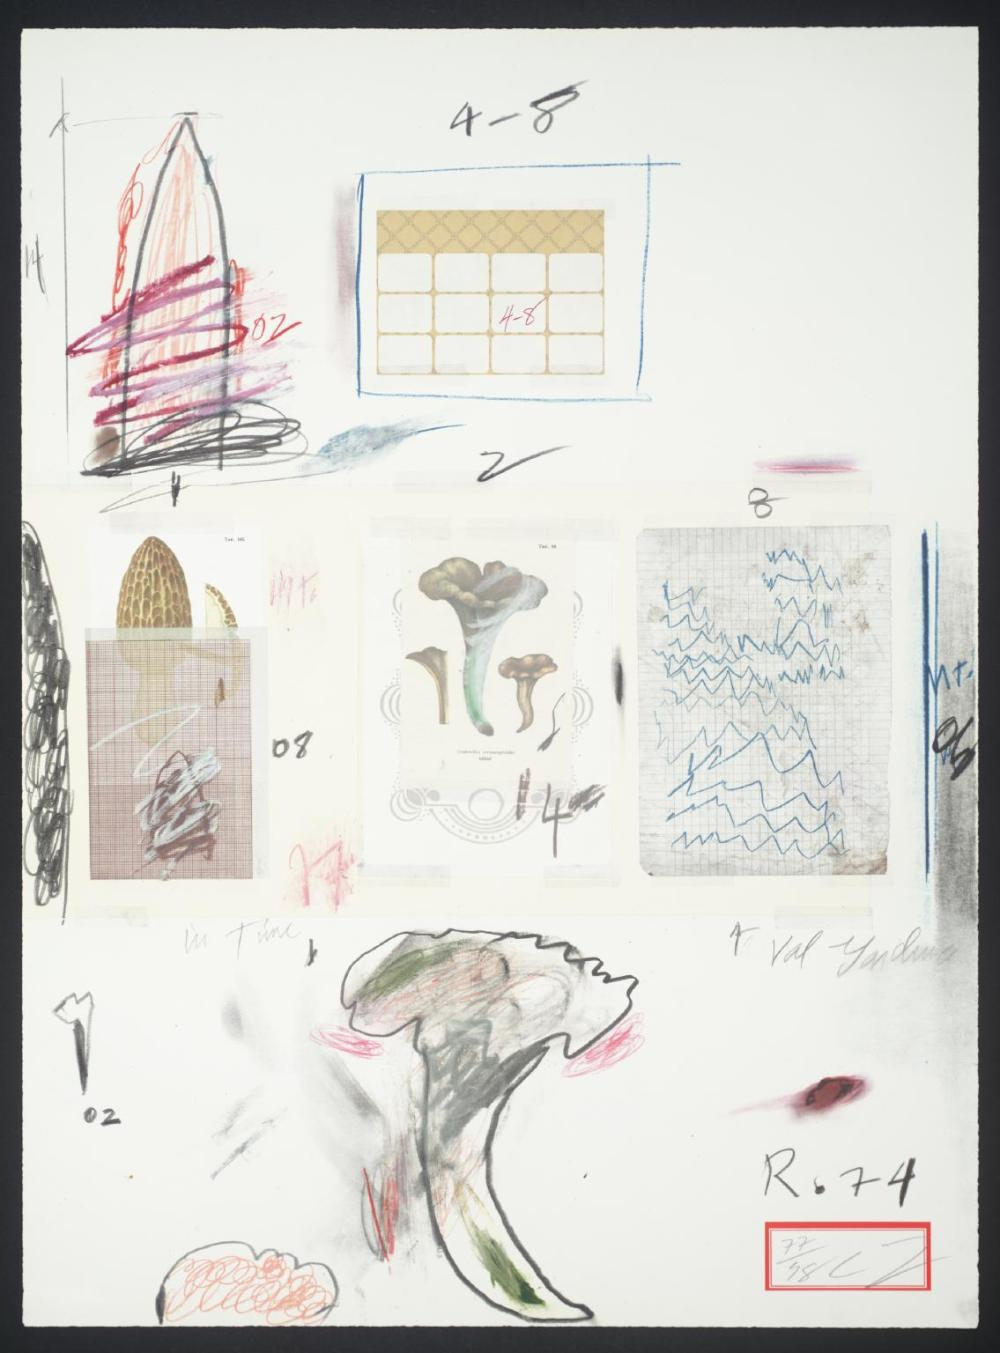 No. VI 1974 by Cy Twombly 1928-2011